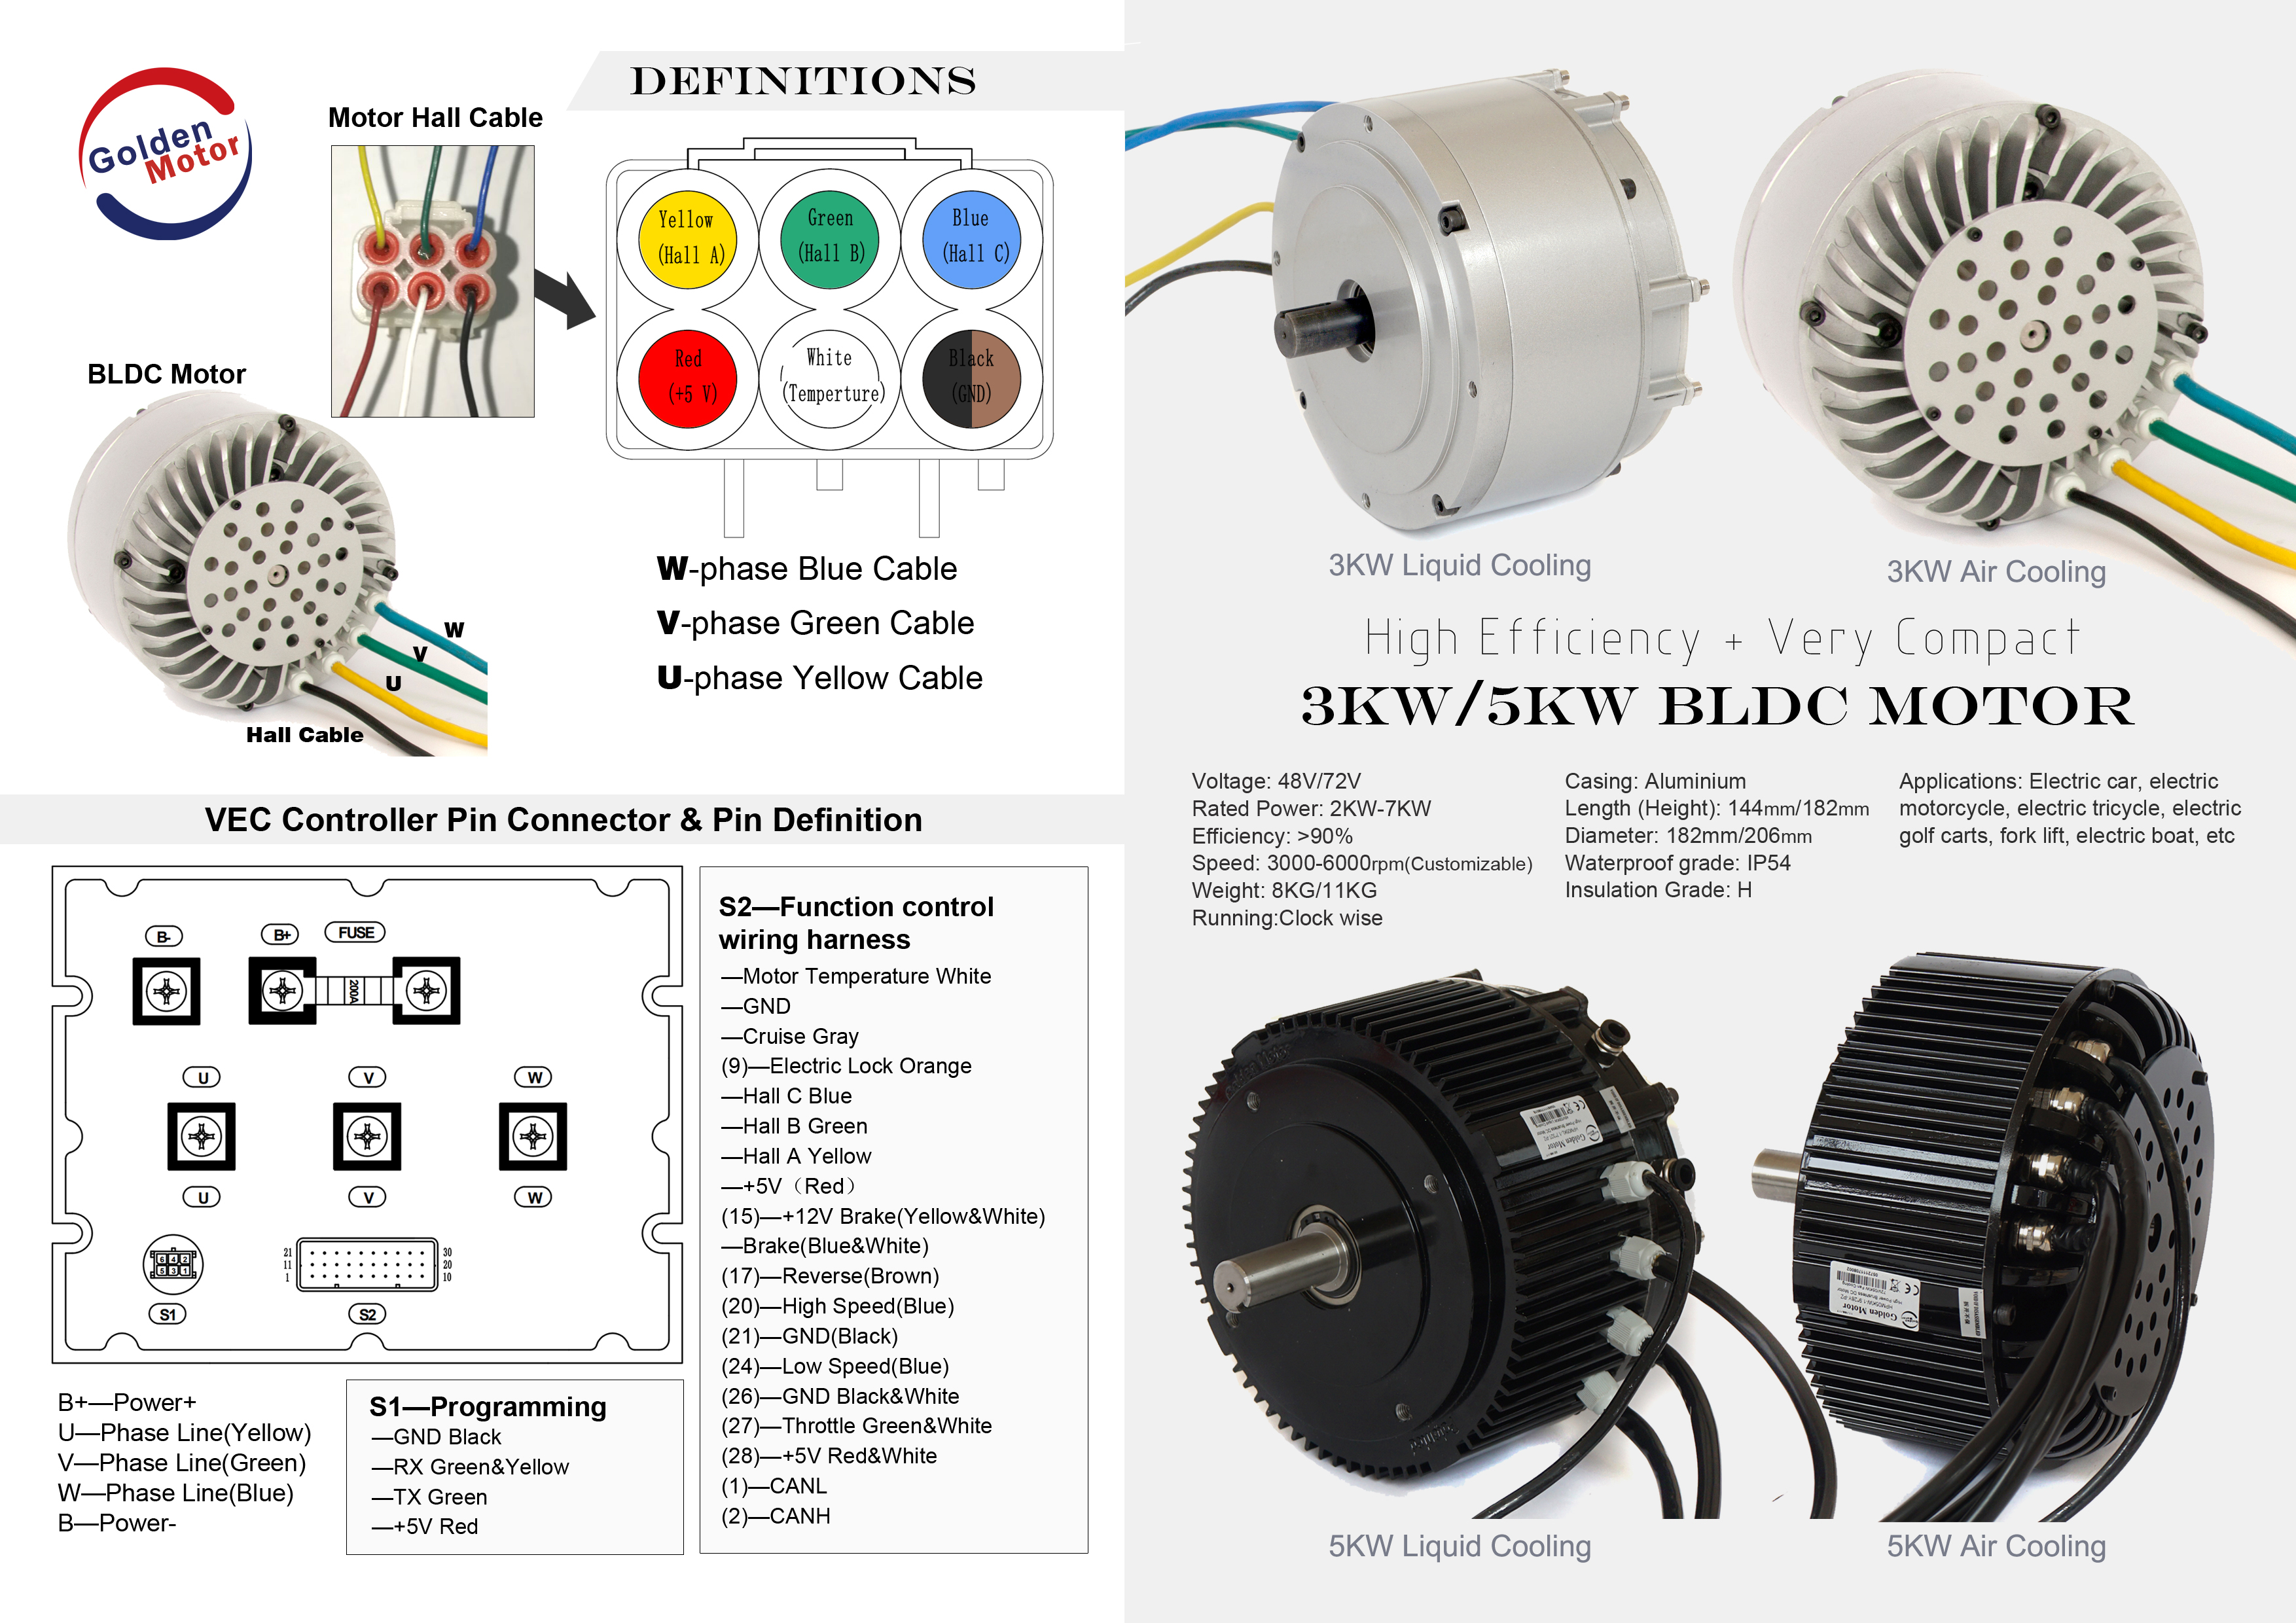 Brushless Motors Bldc Motor Sensorless Controllers Air Cooled Vw Wiring Diagram Hpm3000 Hpm5000